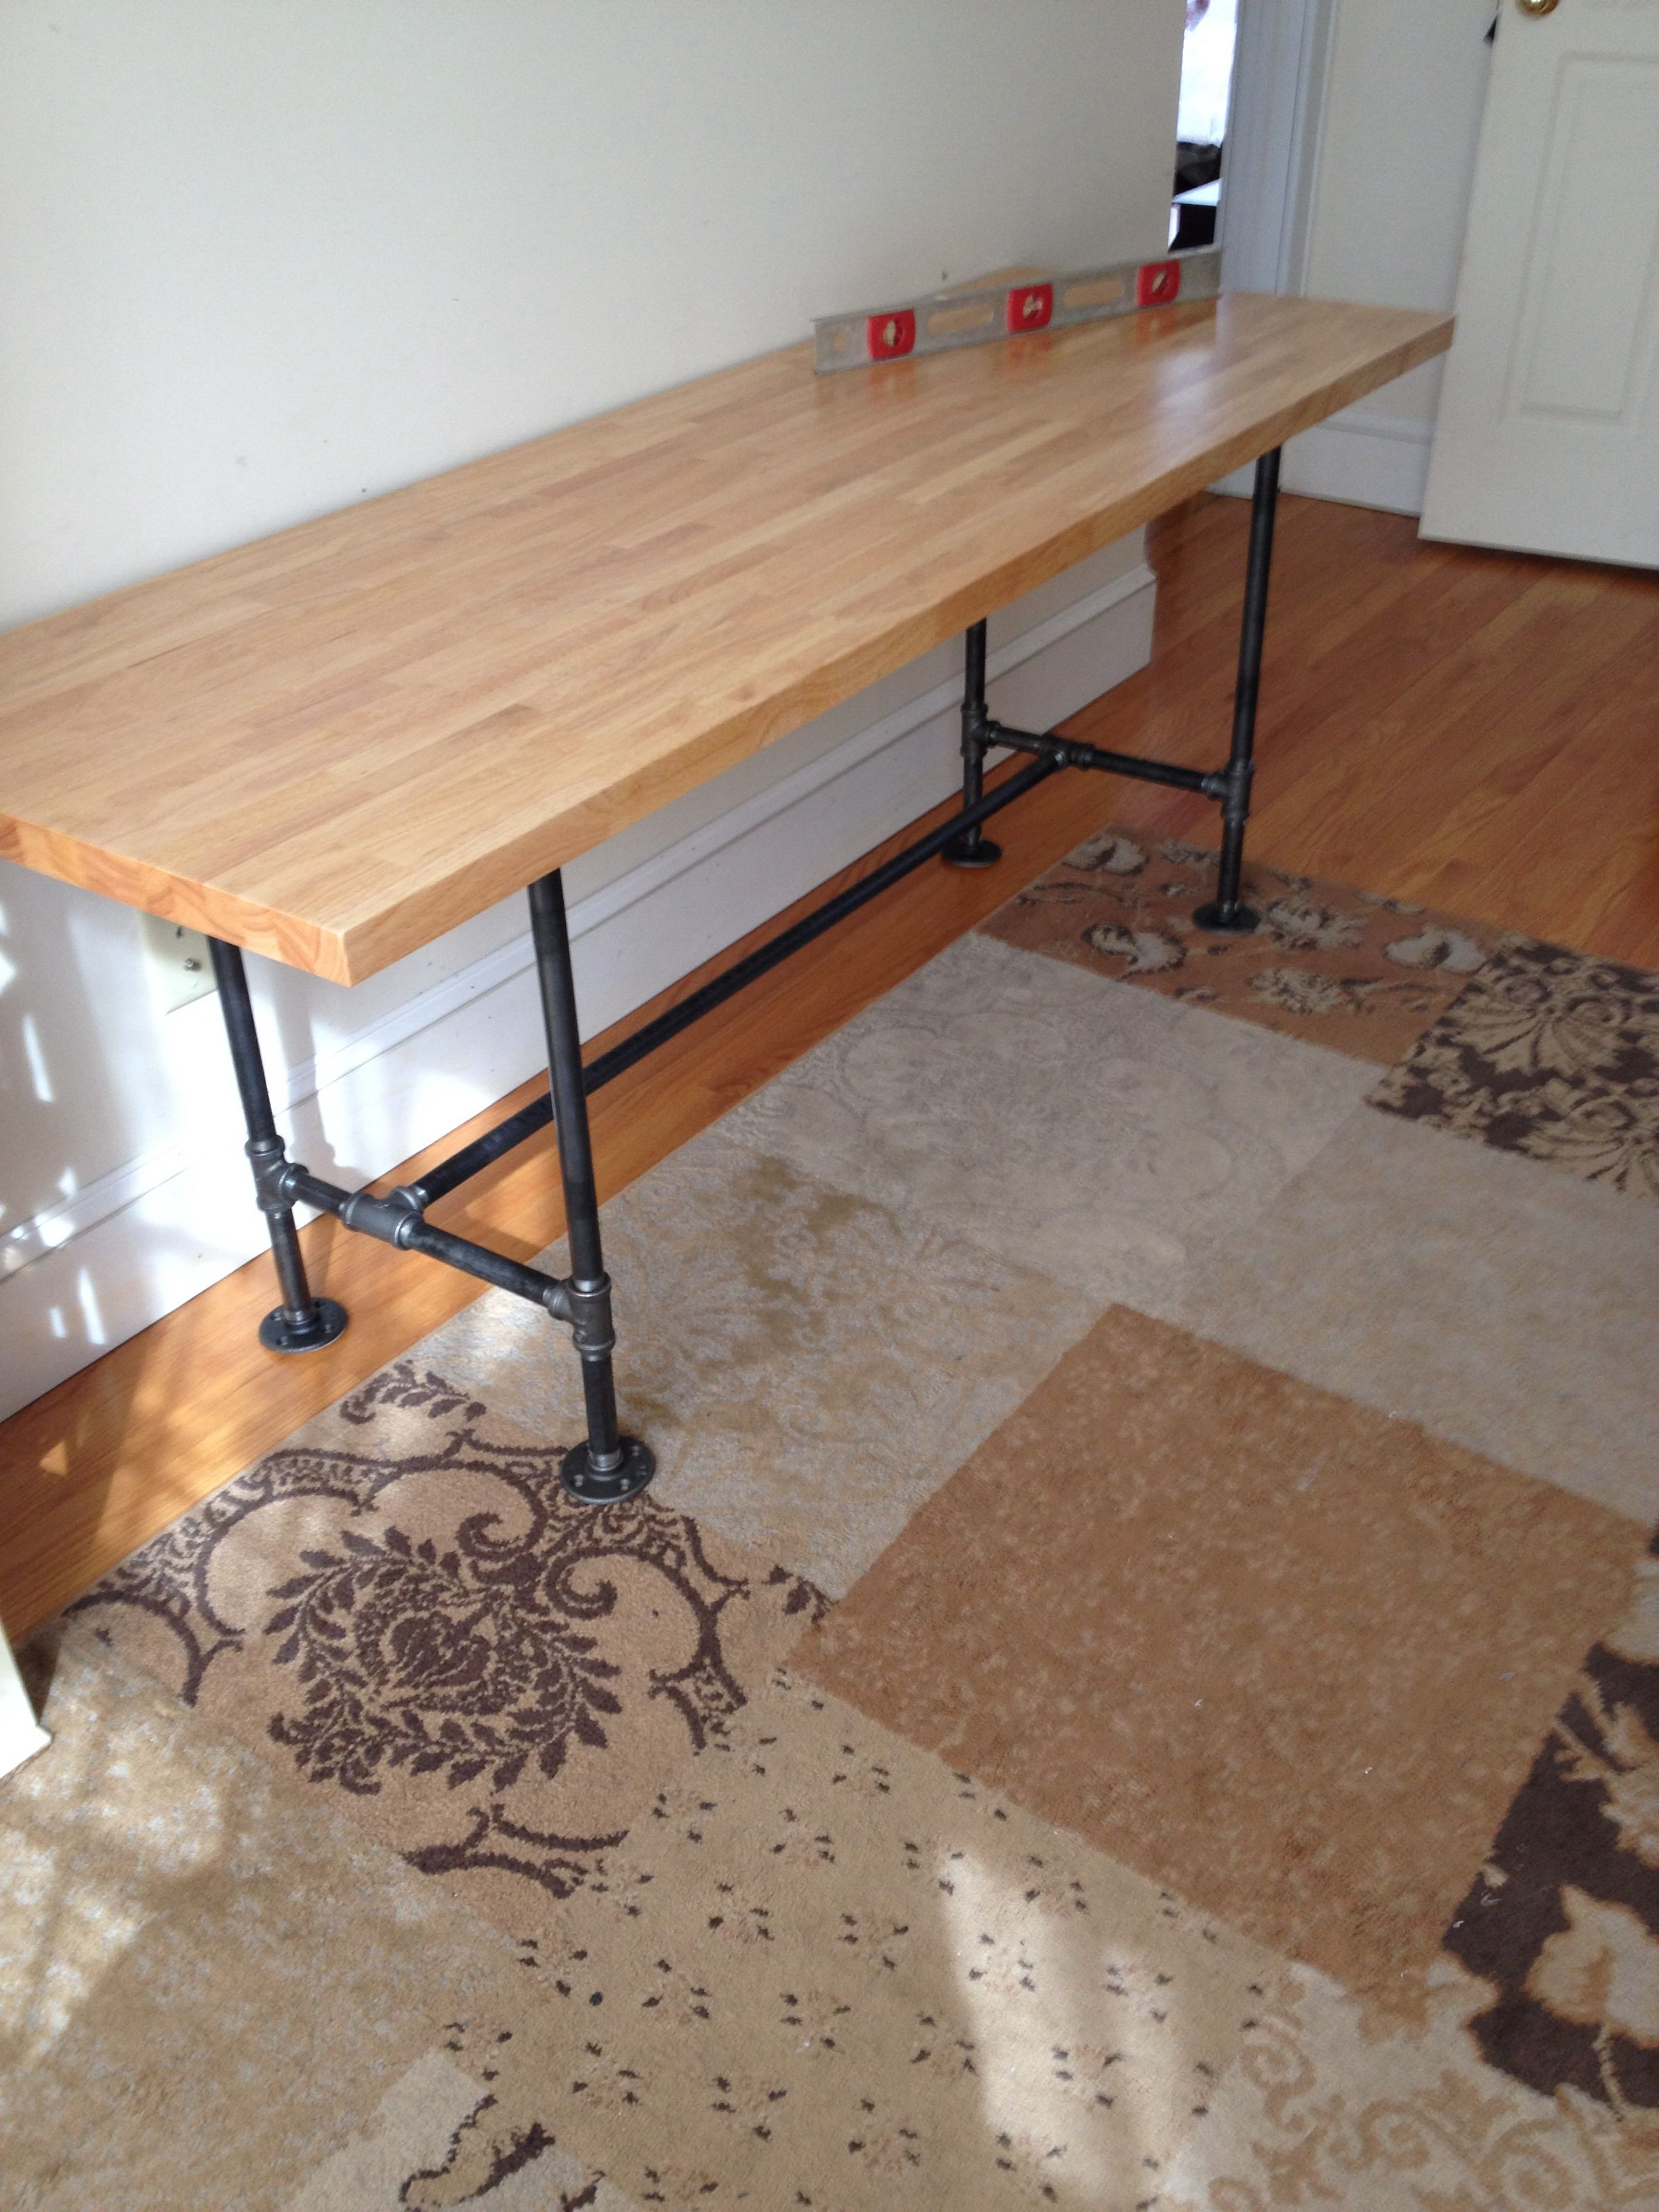 Attirant 6 Foot DIY Pipe Table With Butcher Block. Pipe From Home Depot, Top From